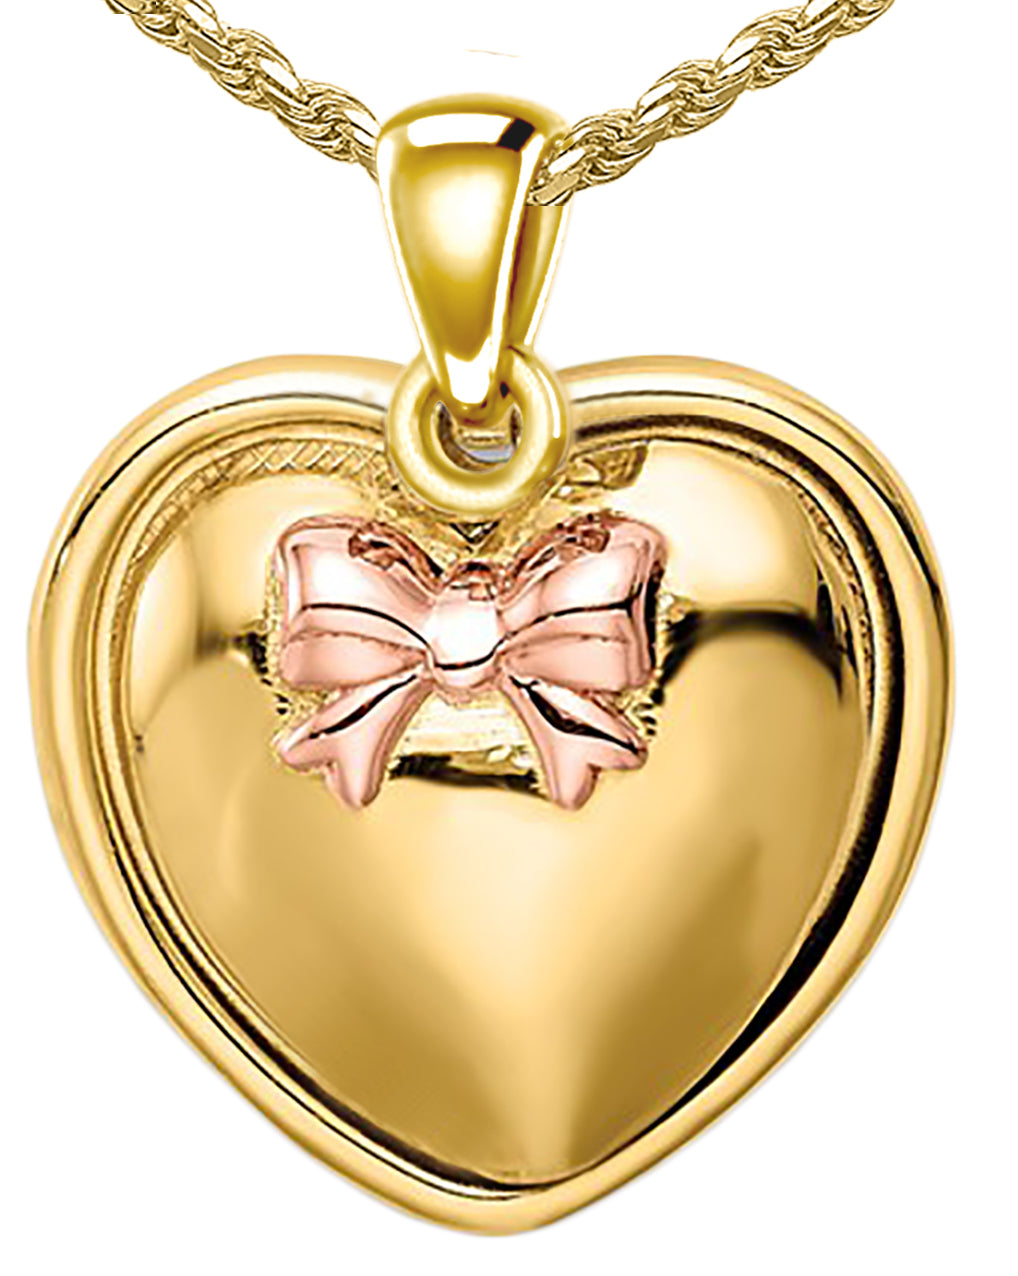 Heart Pendant Necklace - Rose Pendant With I Love You